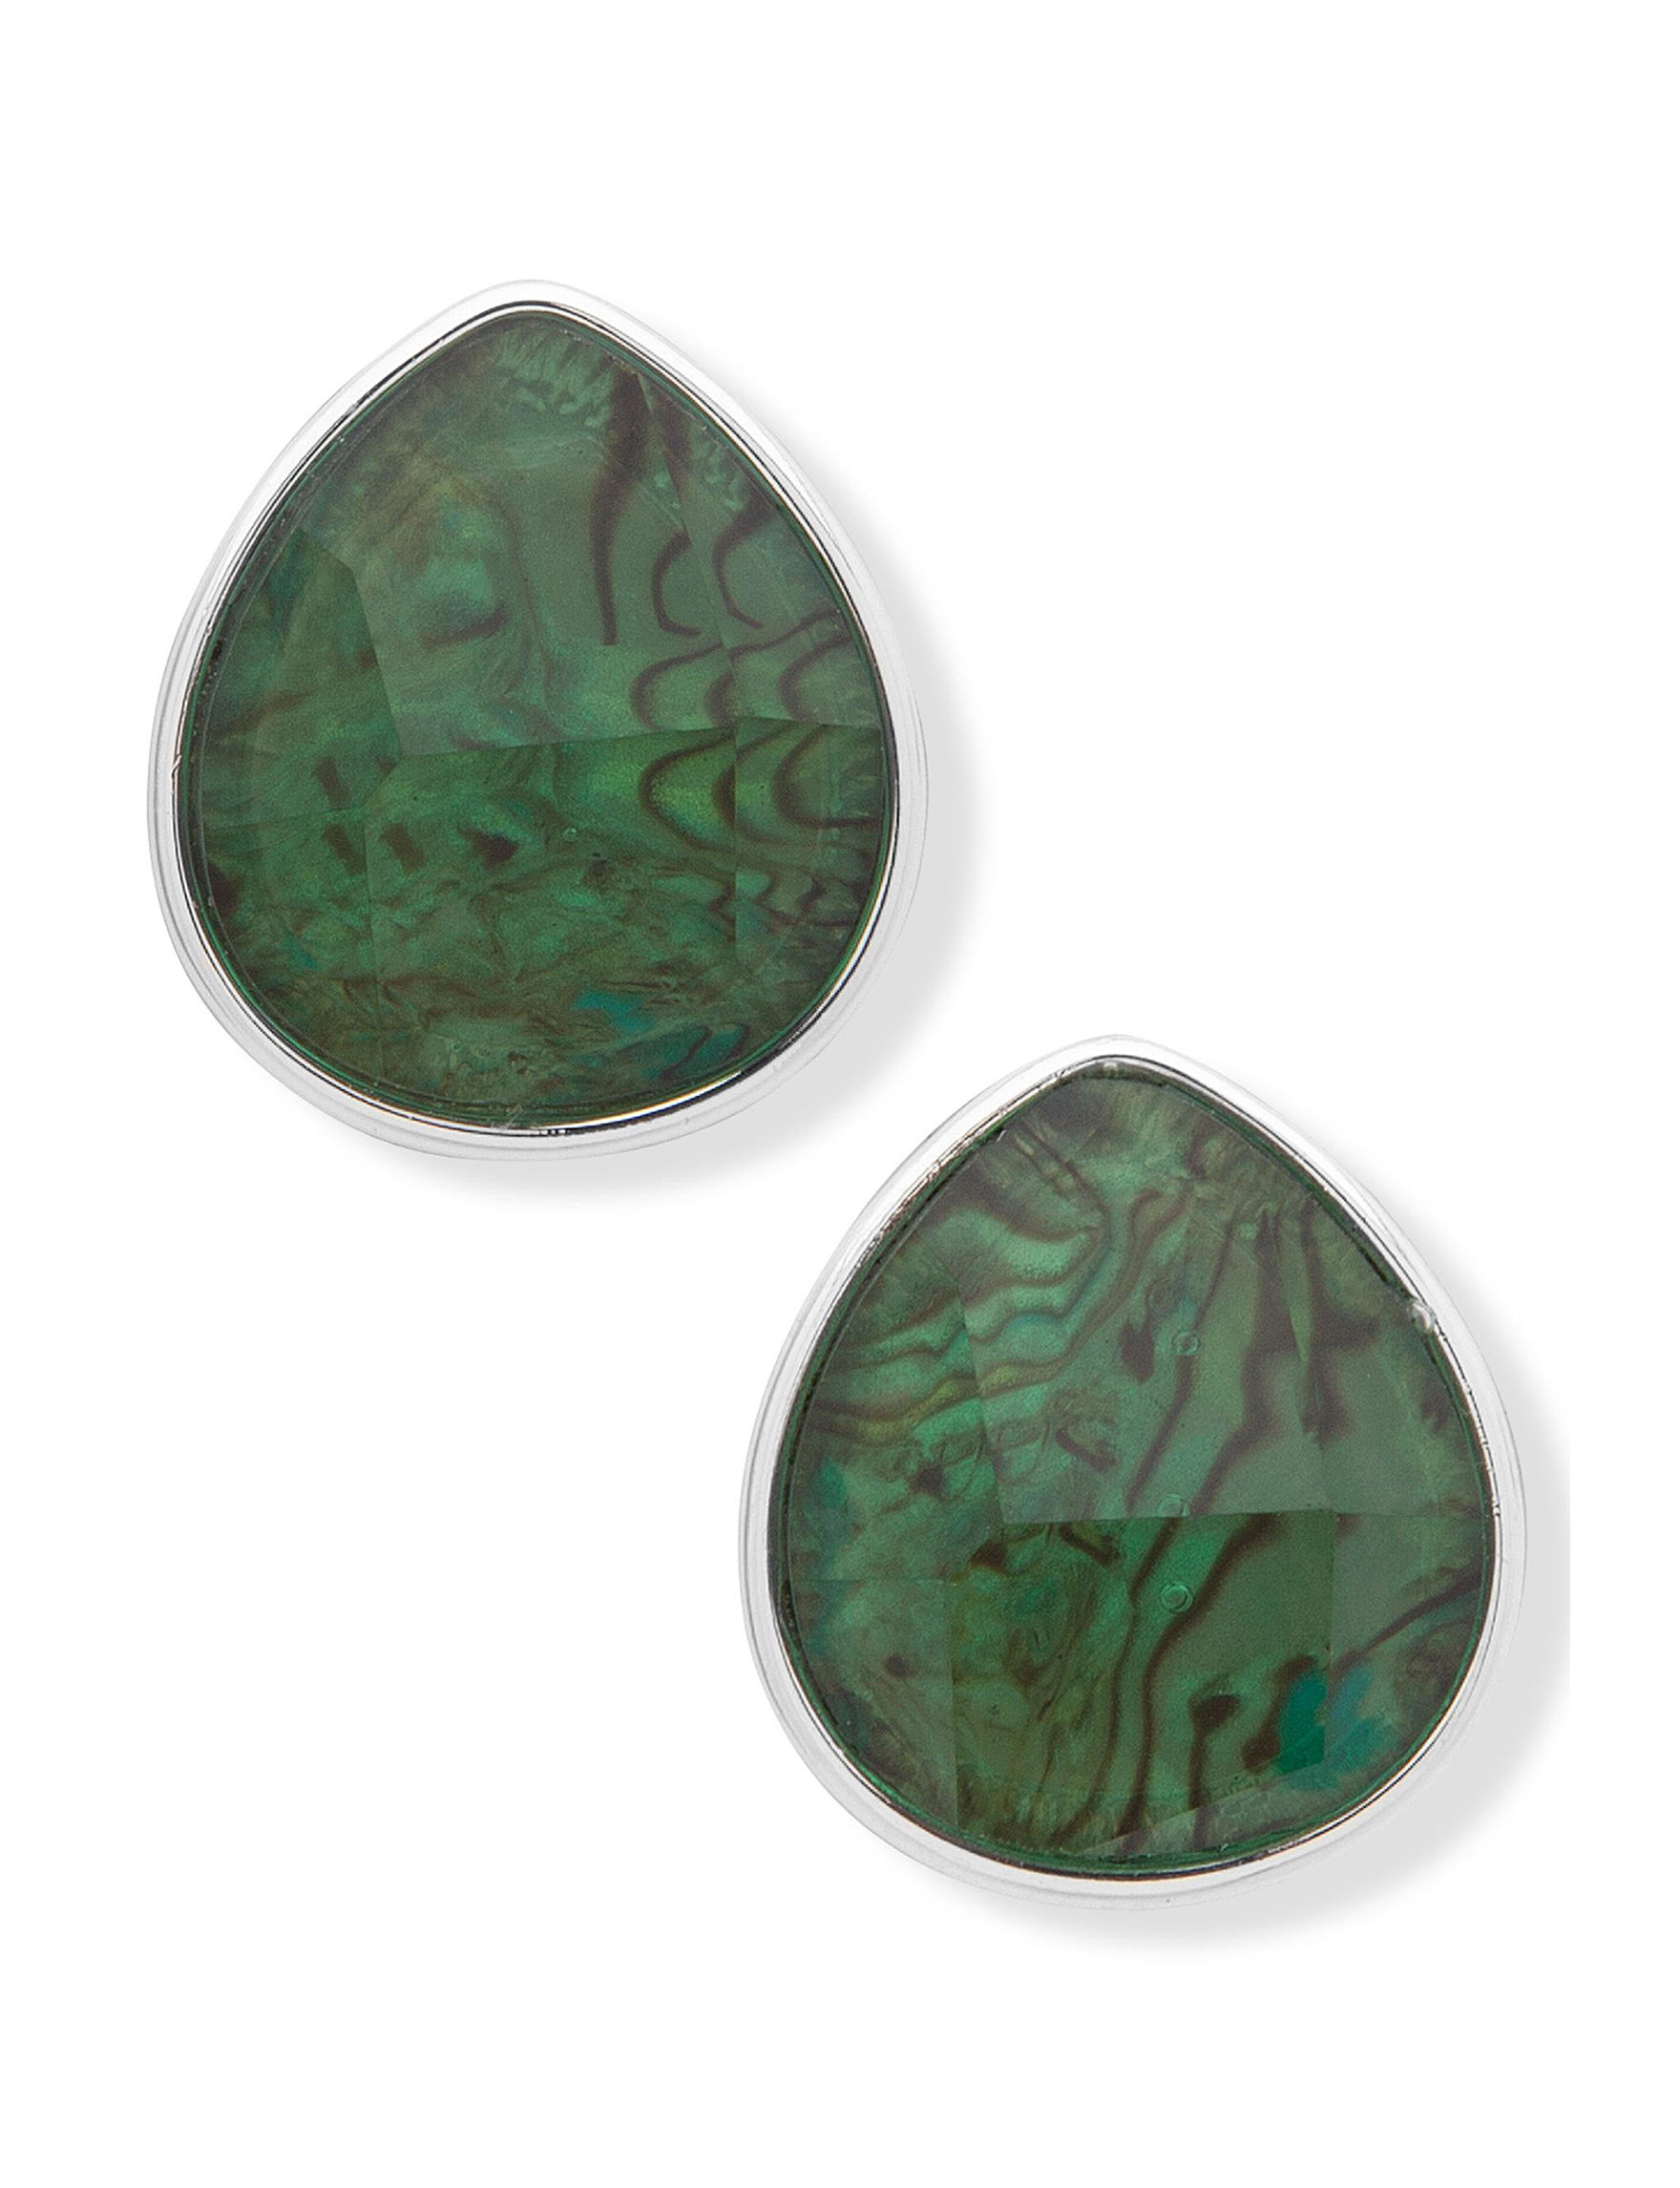 Gloria Vanderbilt Silver / Abalone Studs Earrings Fashion Jewelry